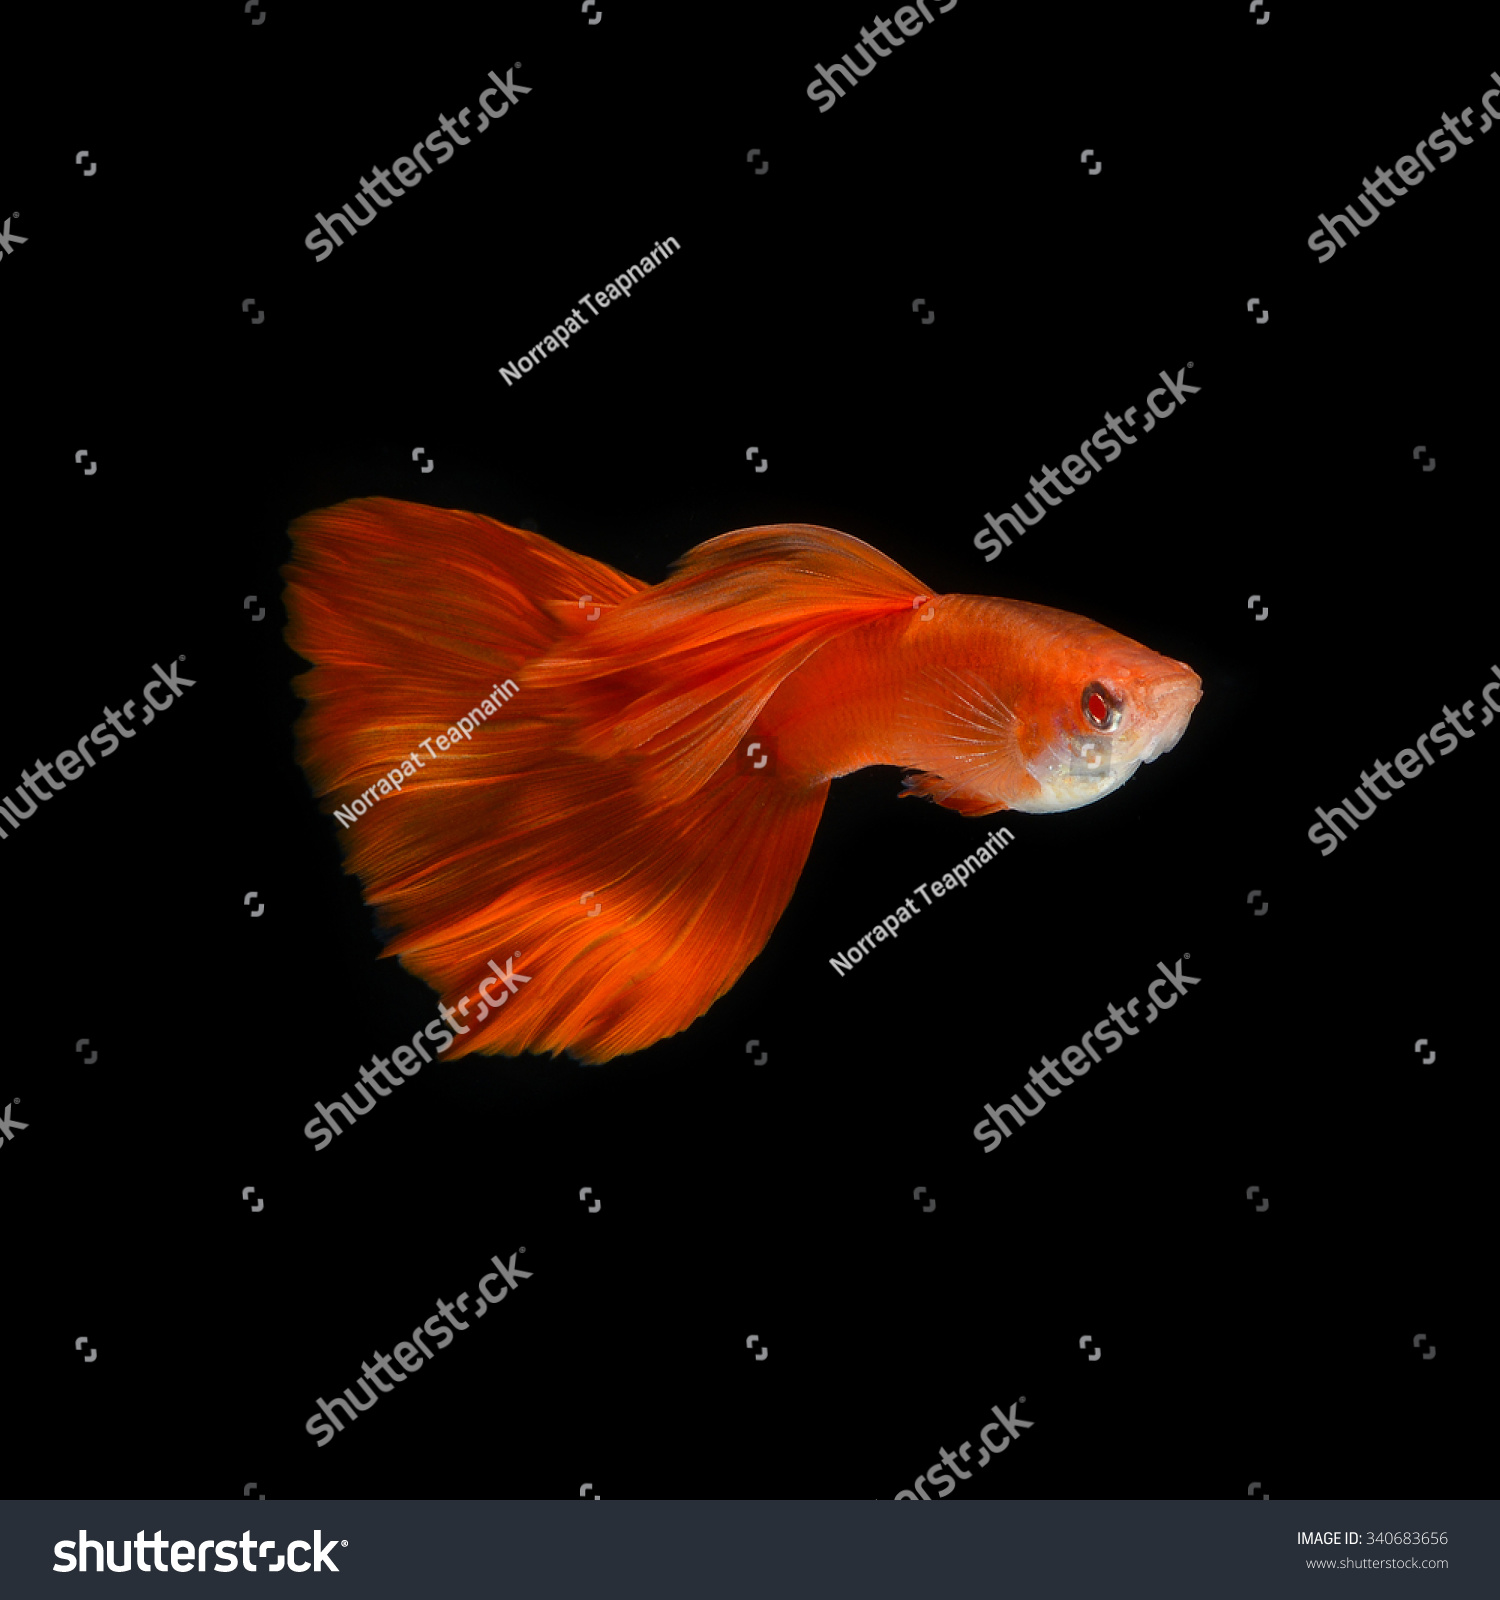 Royalty-free Super Red Guppy,Guppy Multi Colored… #340683656 Stock ...